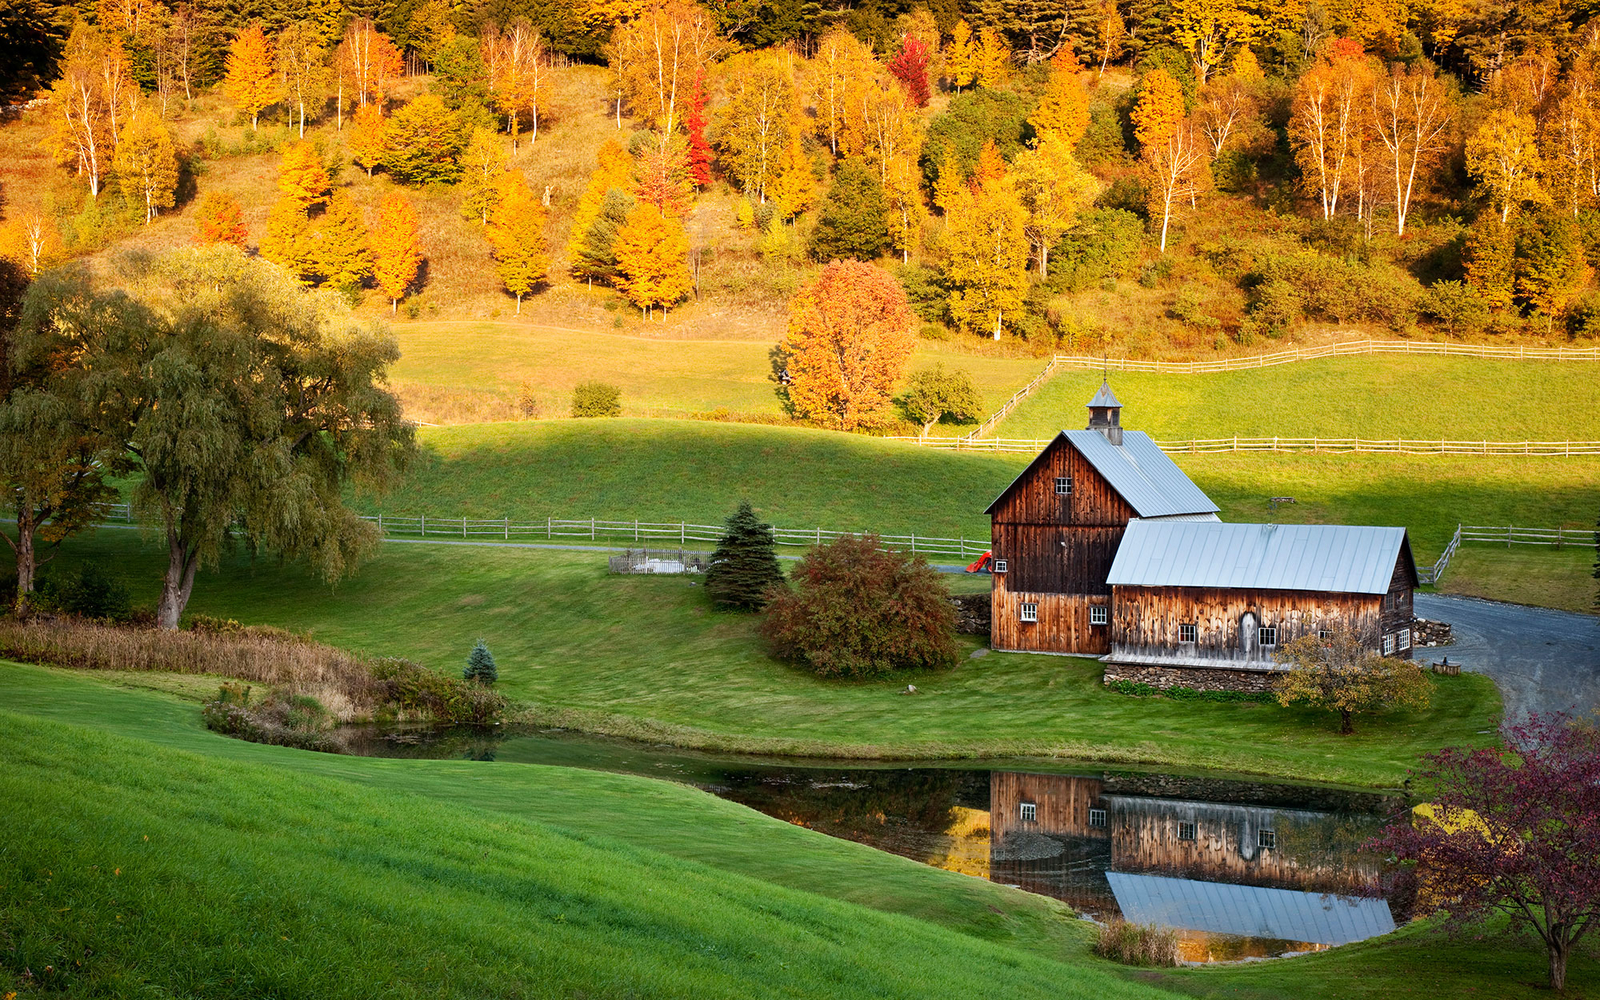 New England Fall Foliage Desktop Wallpaper 18 Beautiful Photos Of Fall From Around The World Travel